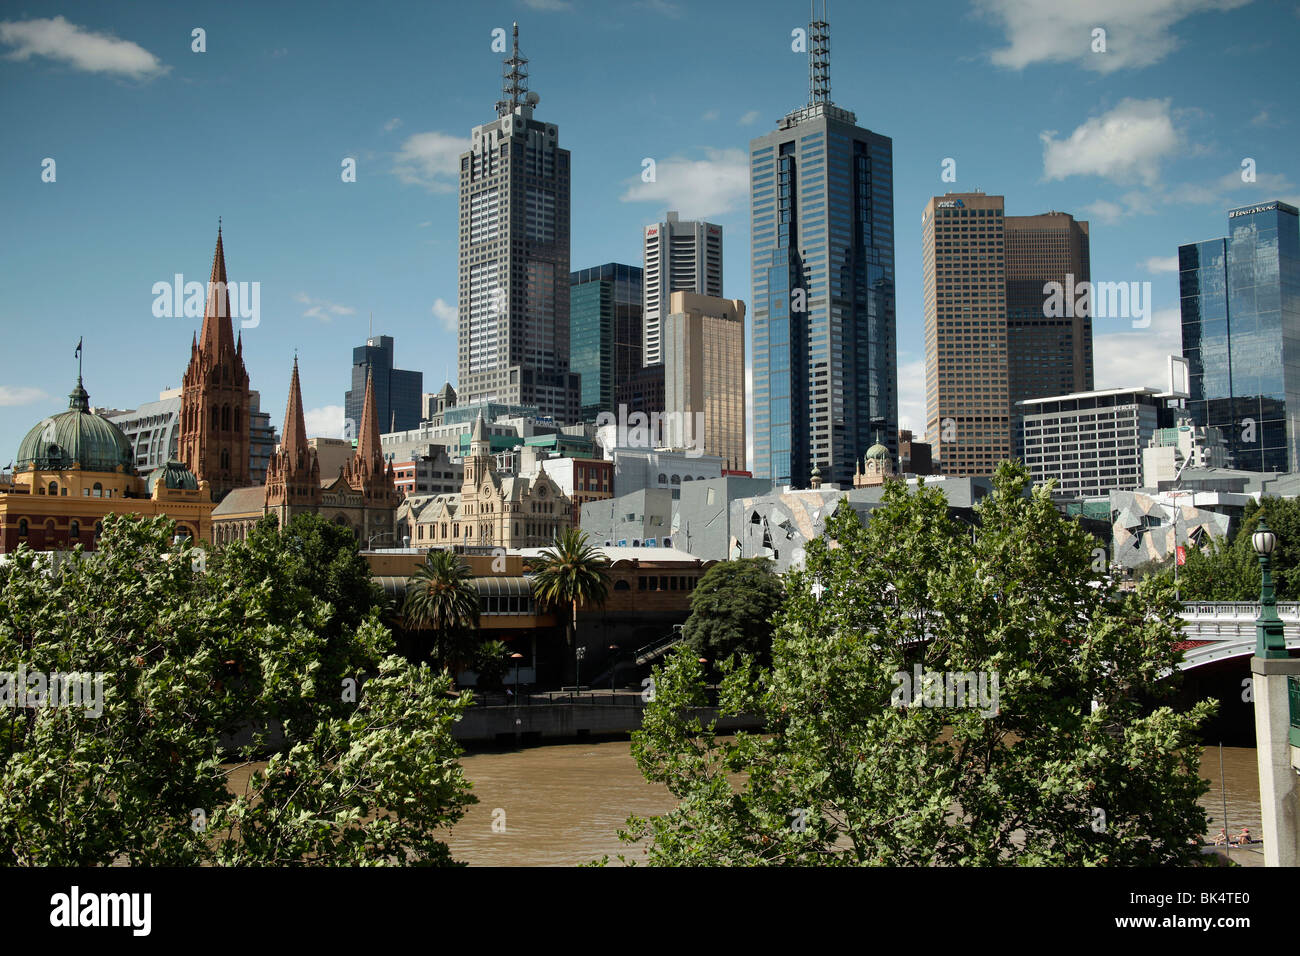 Melbourne Skyline with Flinders Street Station and the towers of St Paul's Cathedral, Victoria, Australia - Stock Image